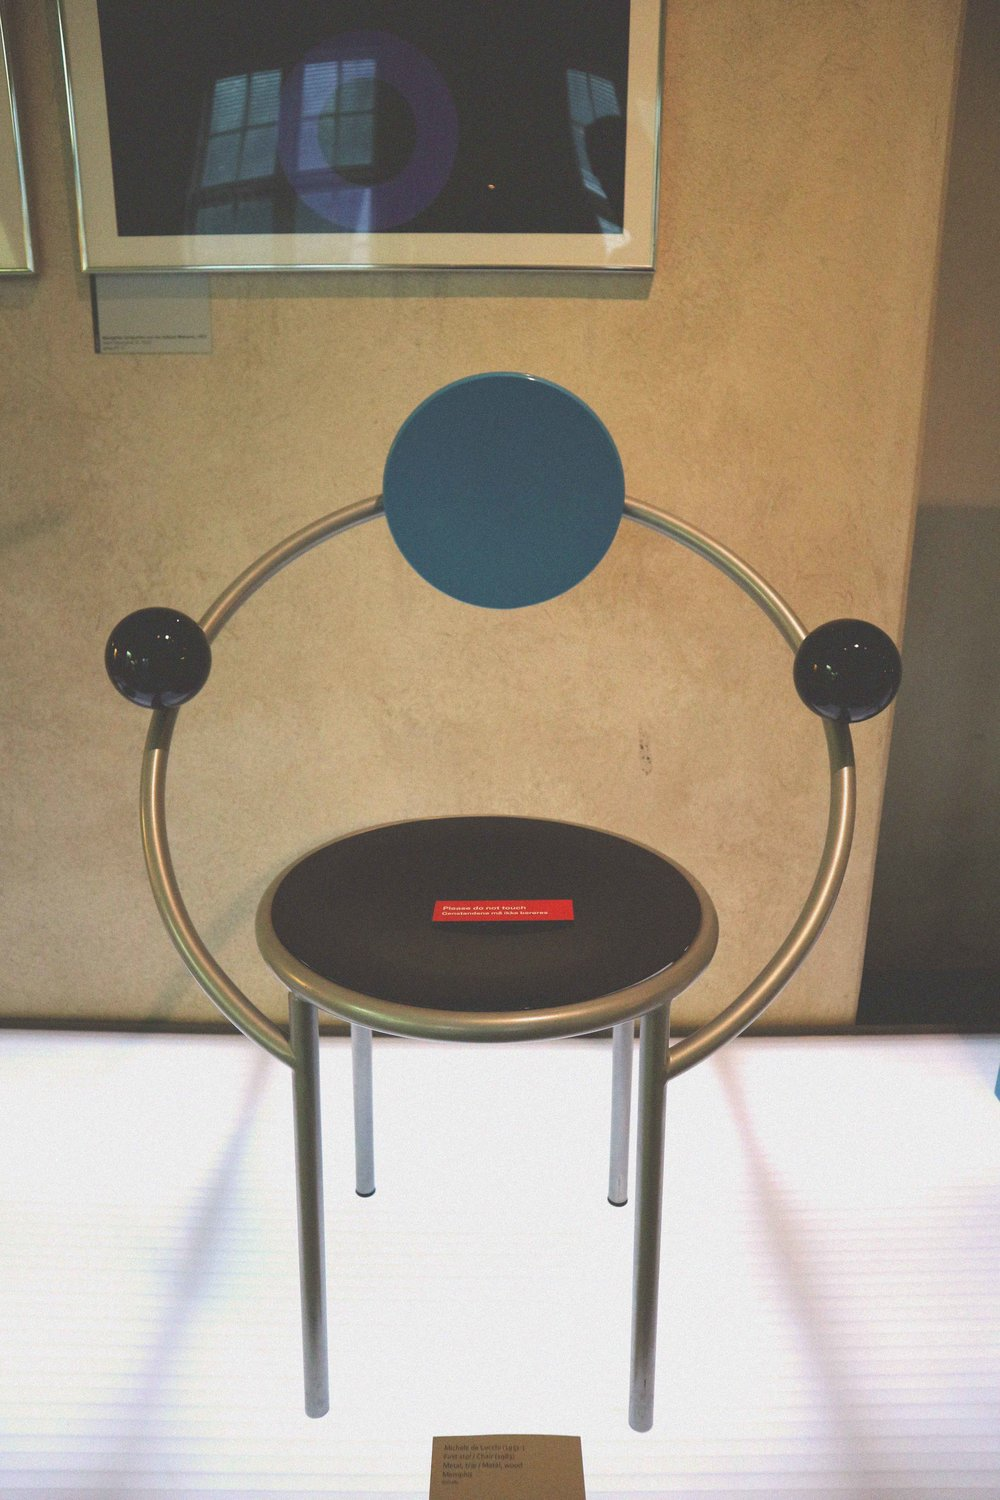 A chair from the 1980s Memphis group who sought to kill off mass production through an artisanal approach to design. Their stuff is pretty crazy!